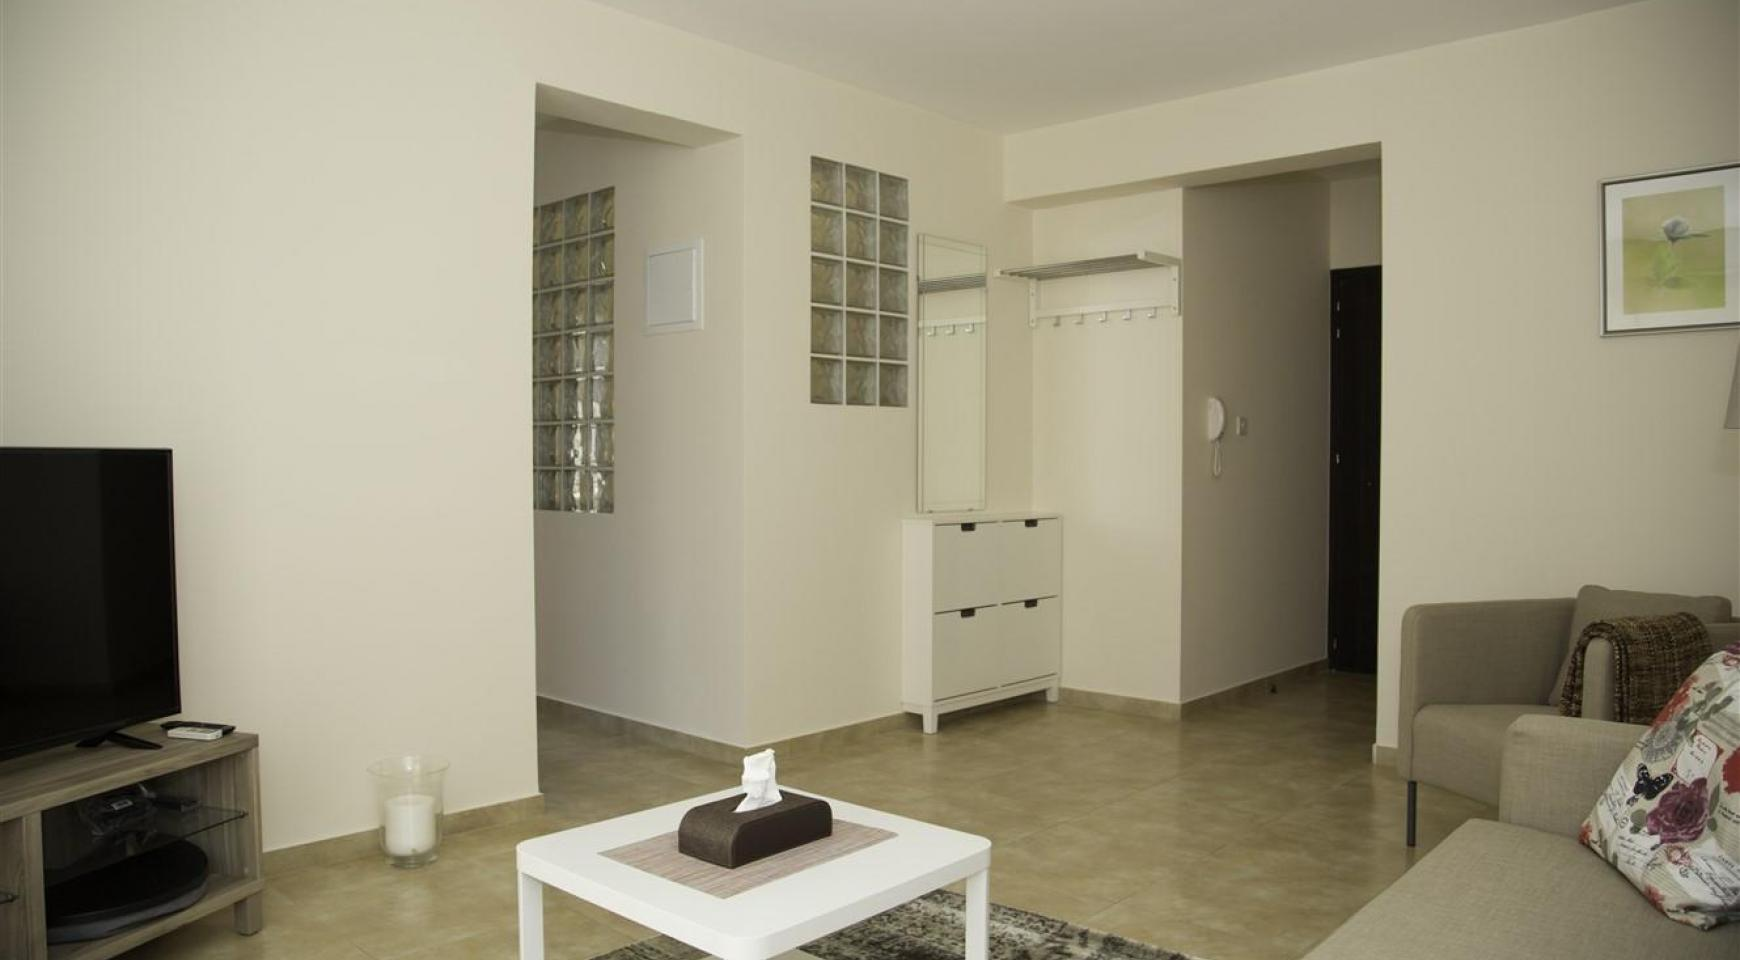 Luxury One Bedroom Apartment Frida 103 in the Tourist Area - 3